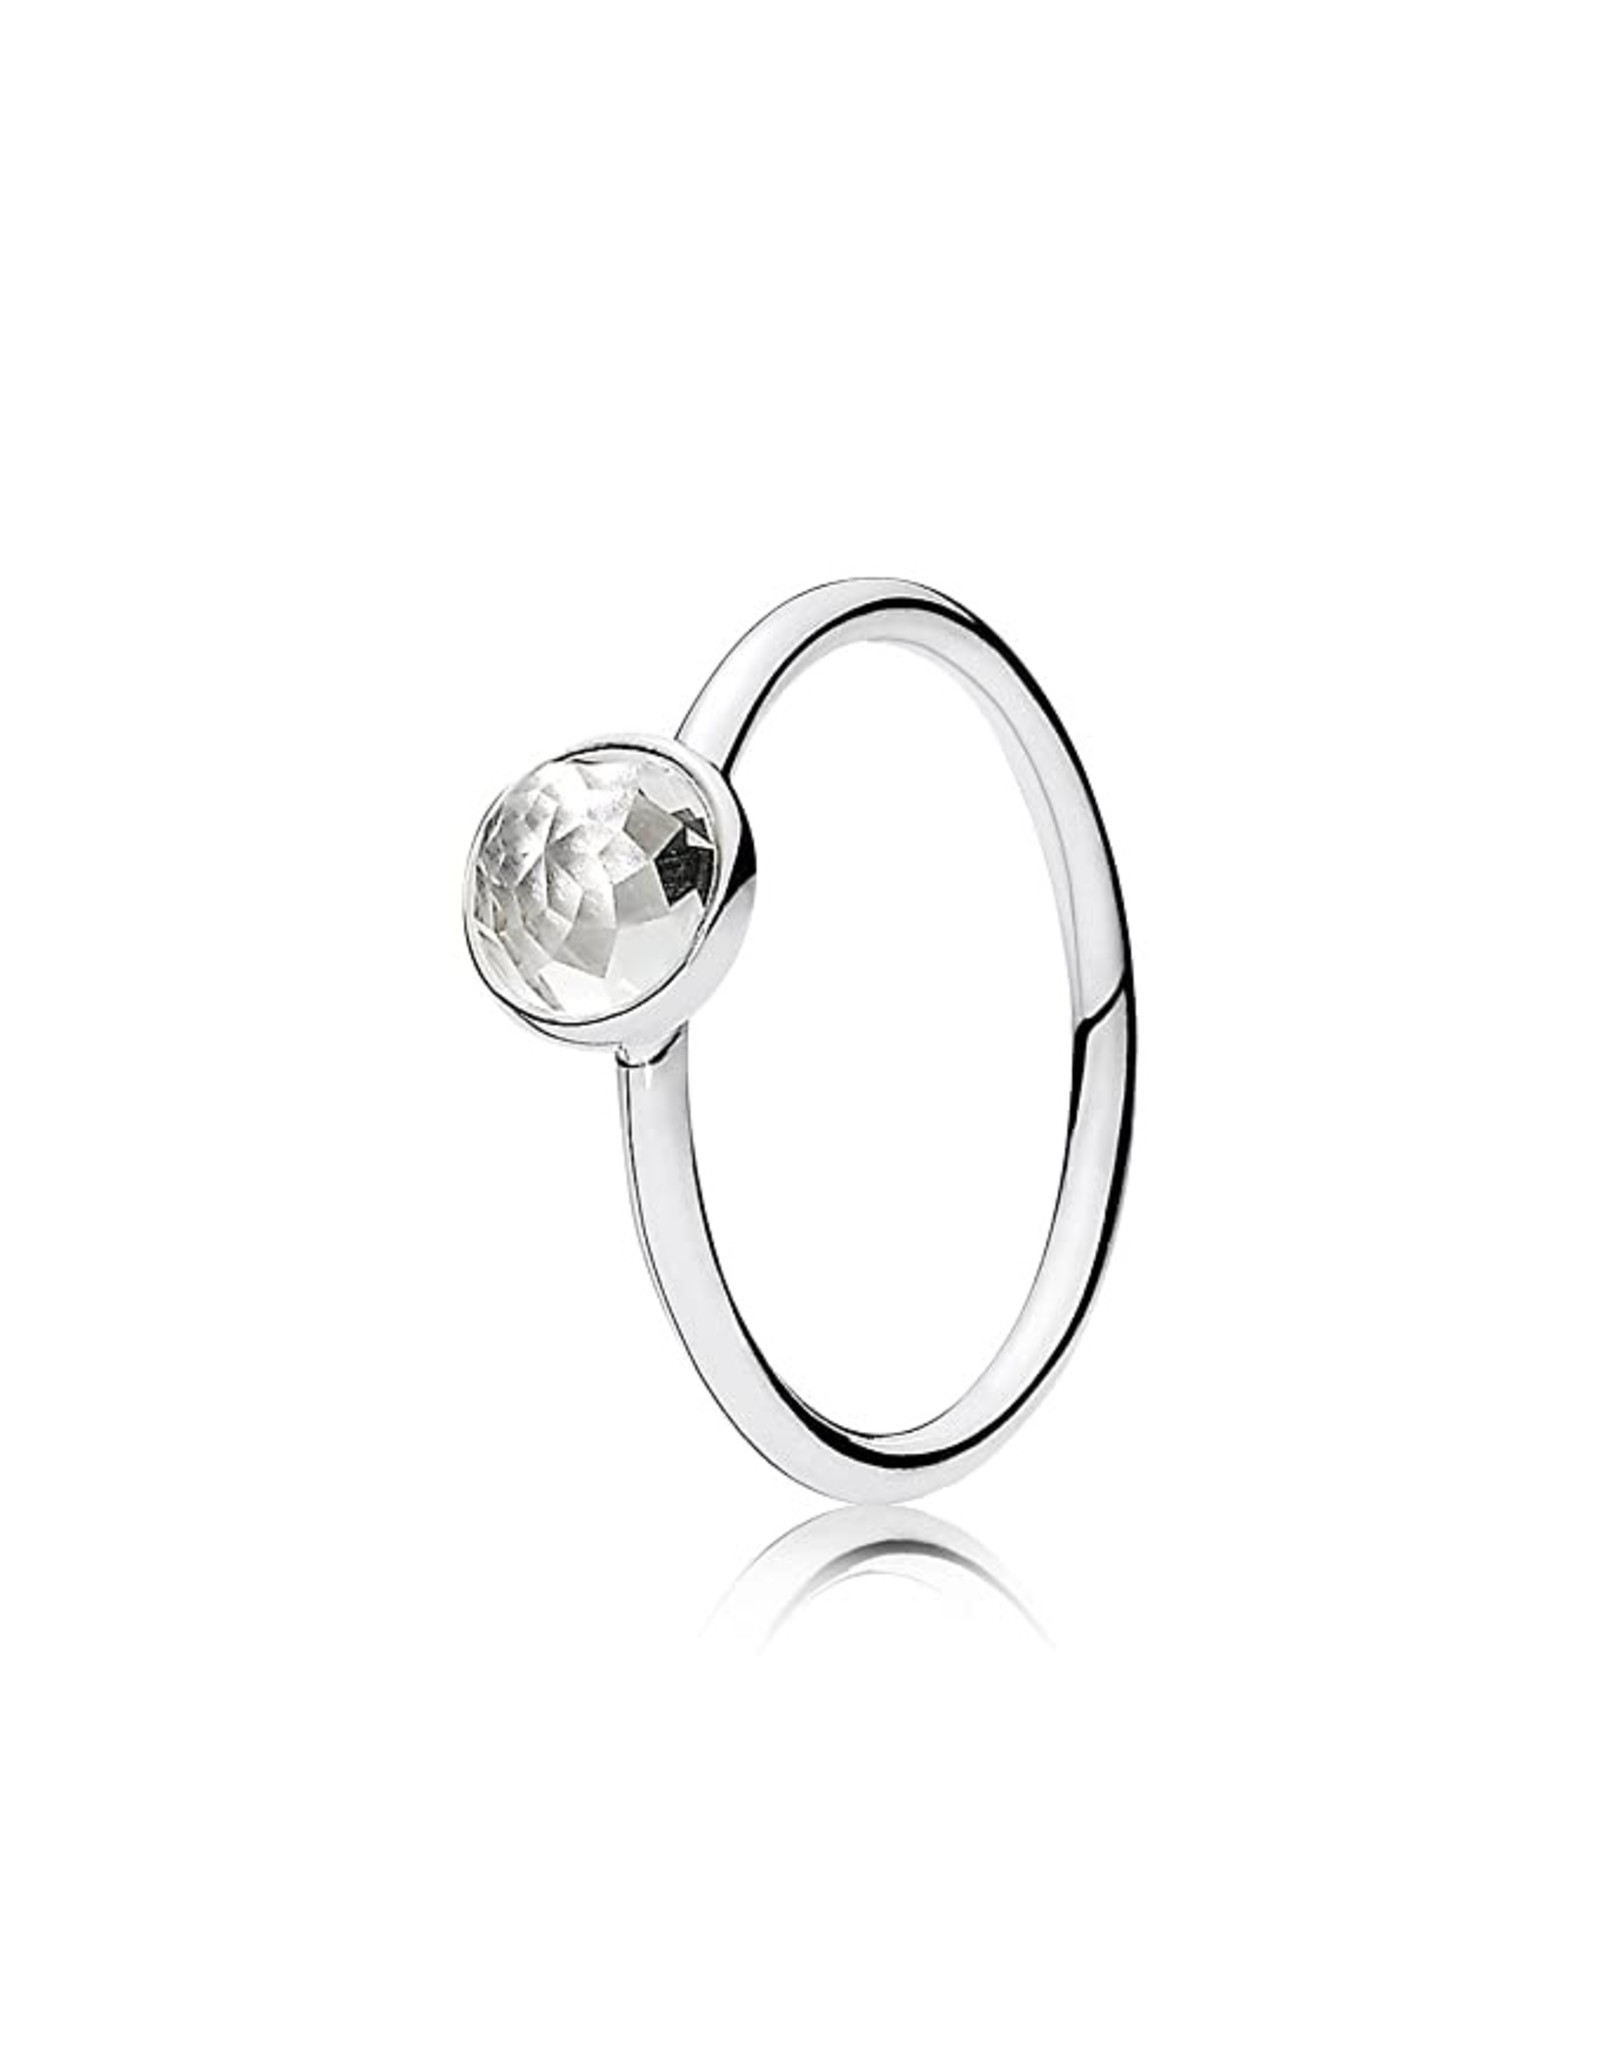 Pandora Pandora Ring, April Droplet, Crystal